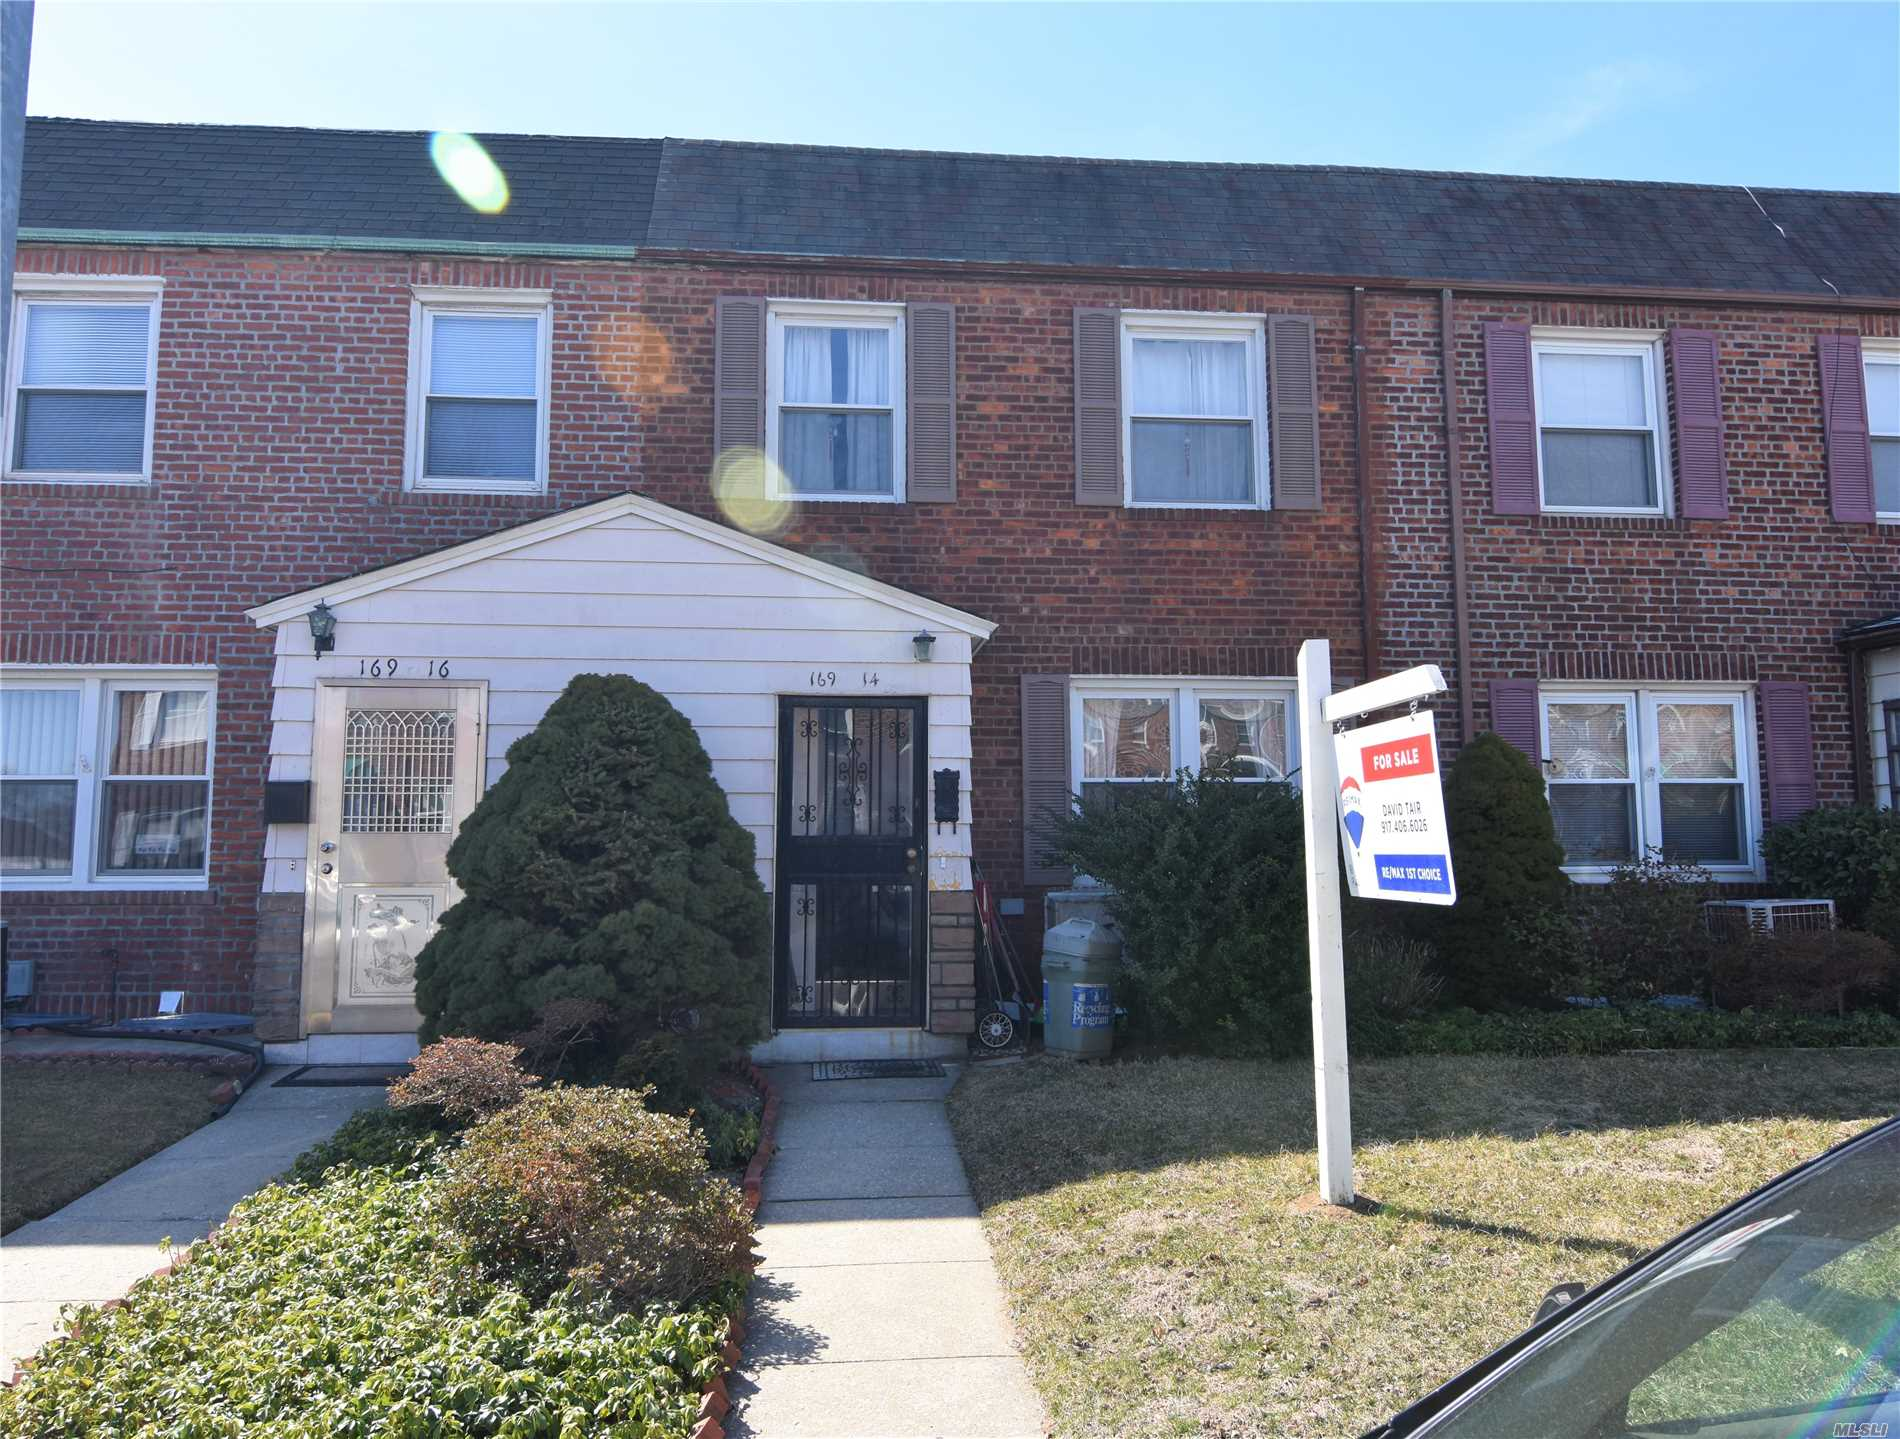 Prime Location! All Brick, 3 Bedrooms One Family Townhouse. That You Have Been Waiting For! Large Living Rm, Formal Dining Rm, Lovely Rear Yard, Fin Bsmt. Gas Cooking. Close To Utopia Pkwy, Francis Lewis Blvd, Shopping, Restaurants & Public Transportation. Excellent School : P.S. 184 & J.H.S. 194 & Bayside High School.